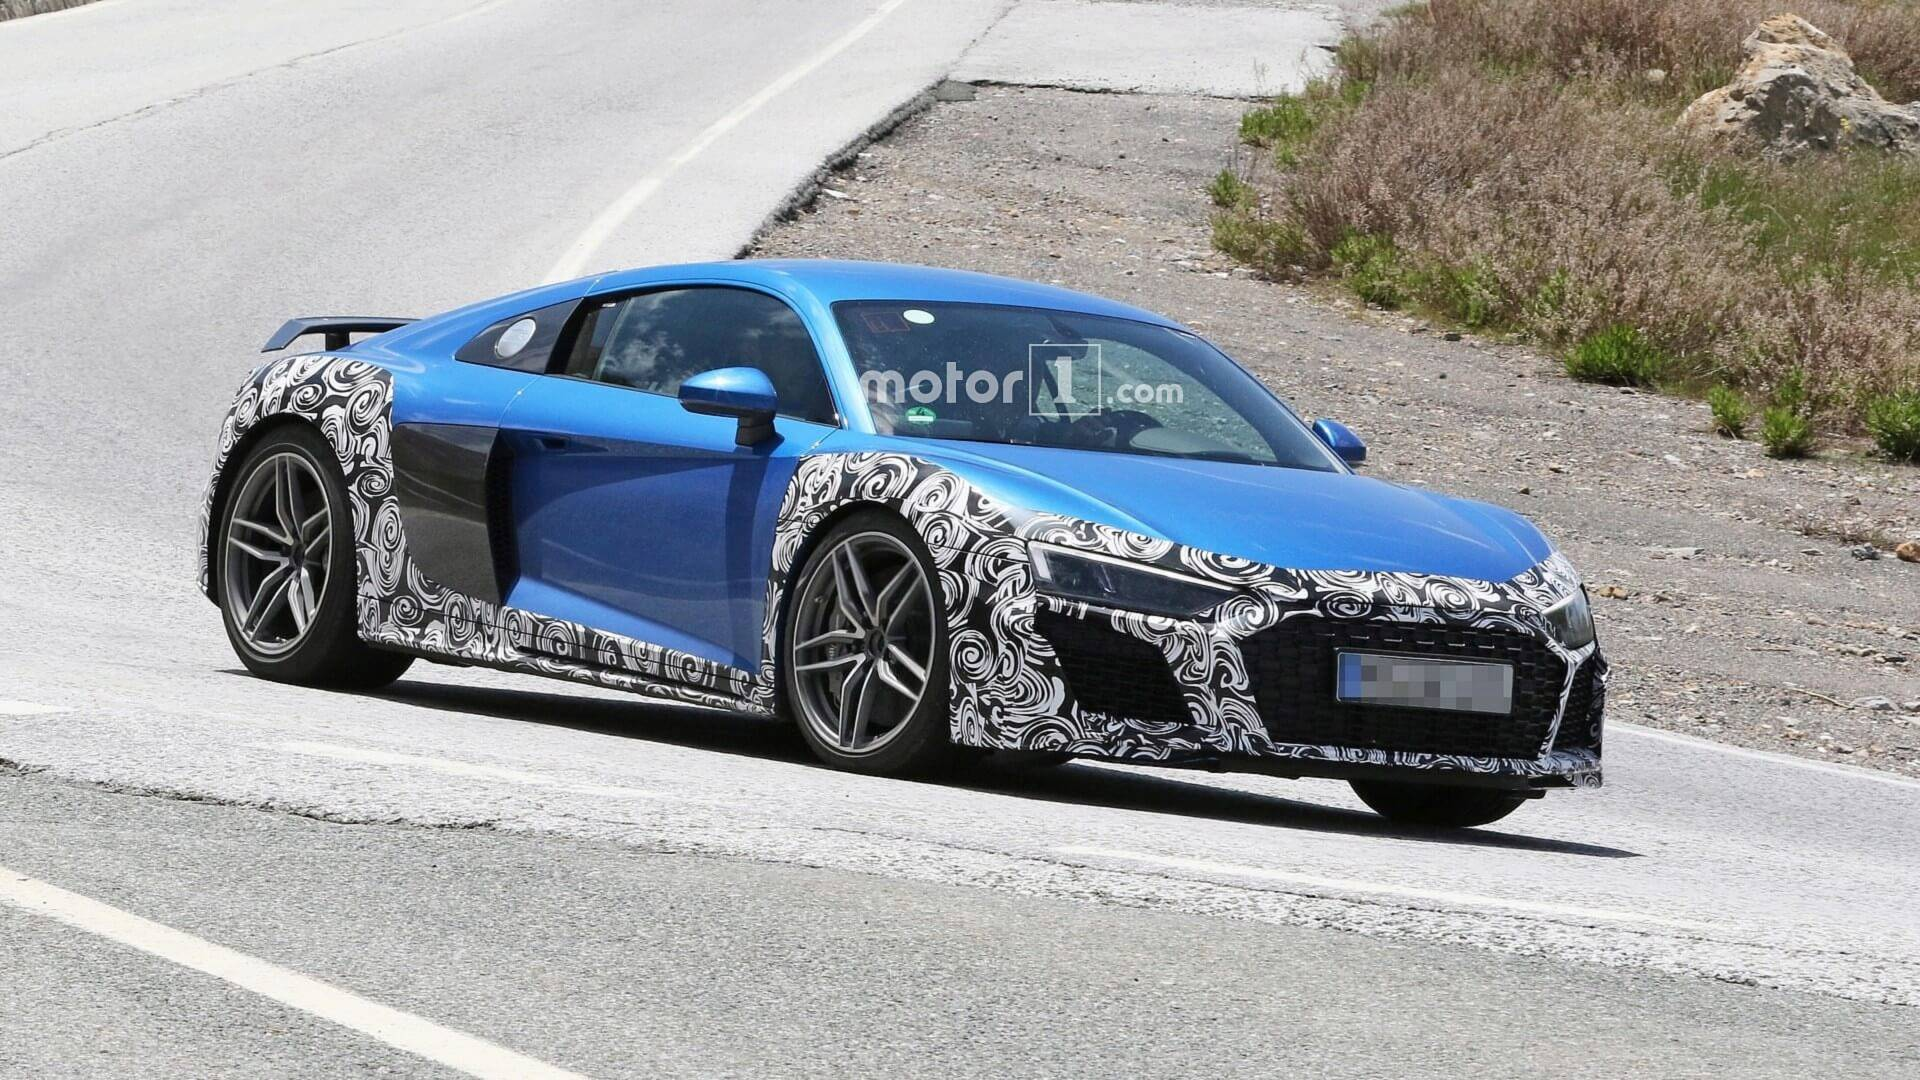 Audi R8 Spied With New Bumpers Oval Exhaust Tips Could Be GT Model 1920x1080